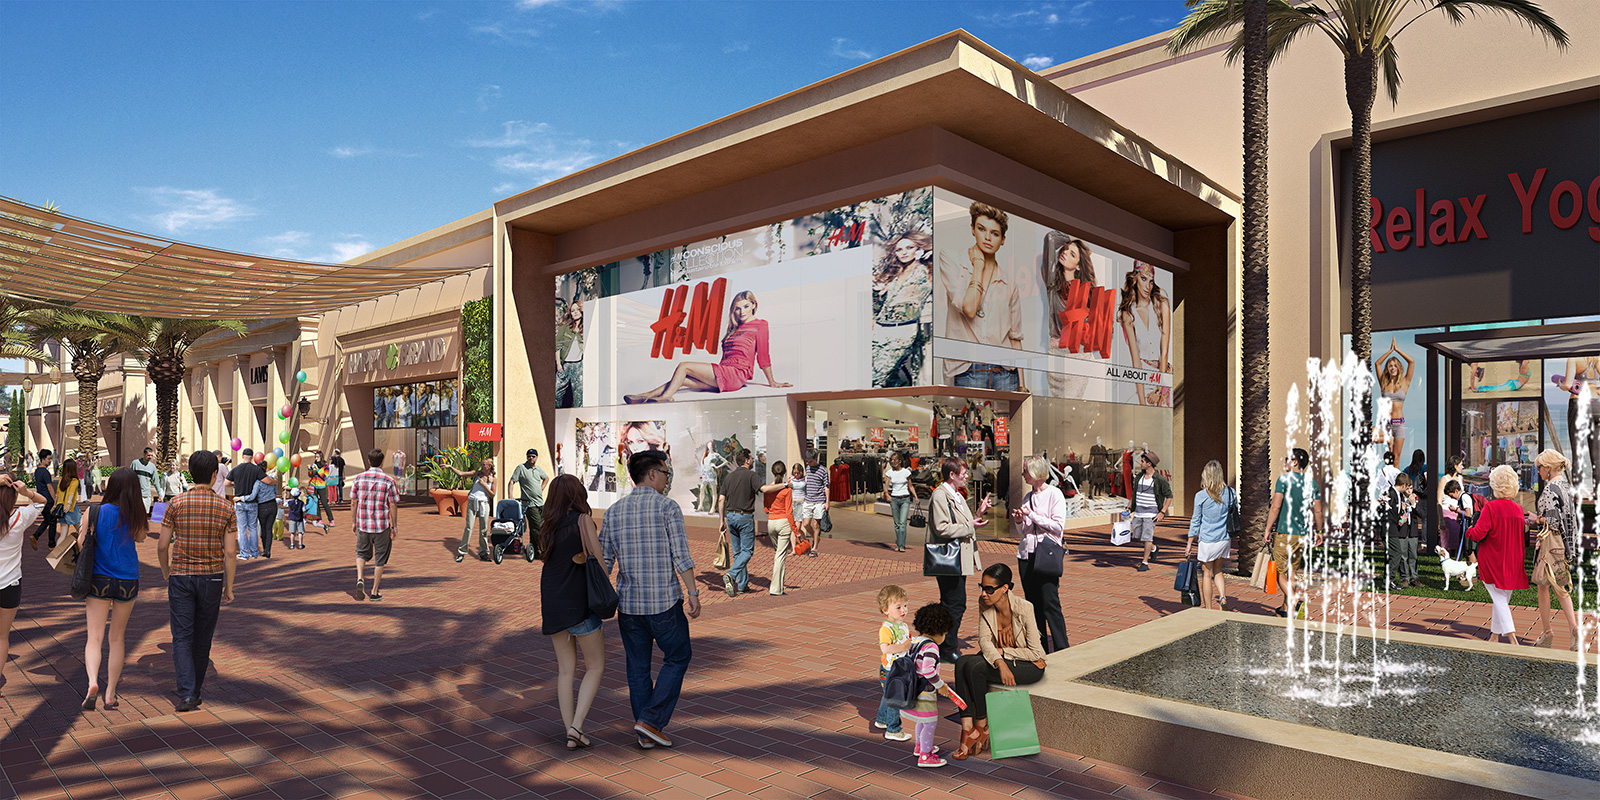 New Year New Irvine Spectrum Center 200m Plus Reinvestment Set To Bring 30 New Stores And Restaurants Design And Parking Enhancements In 2018